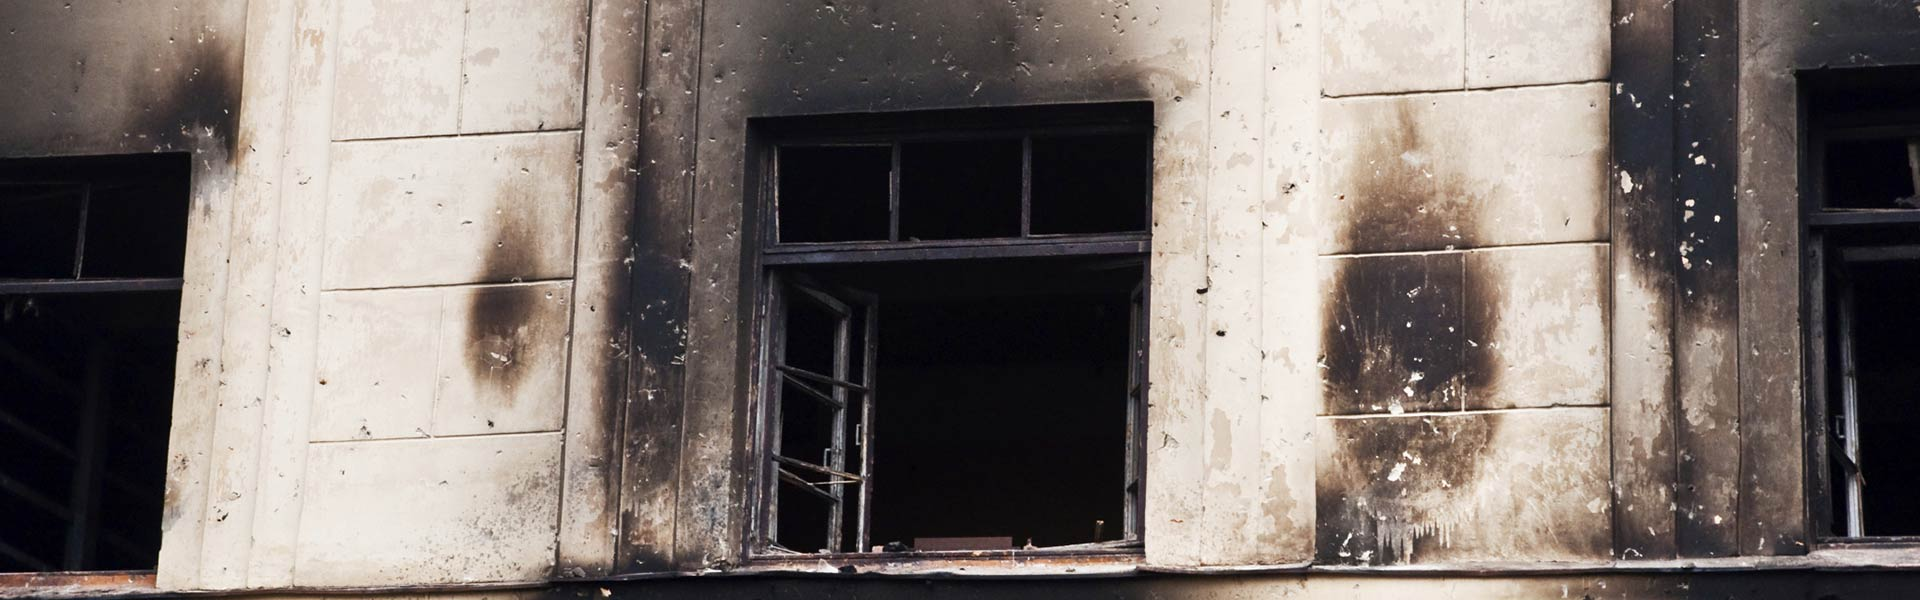 window with fire damage